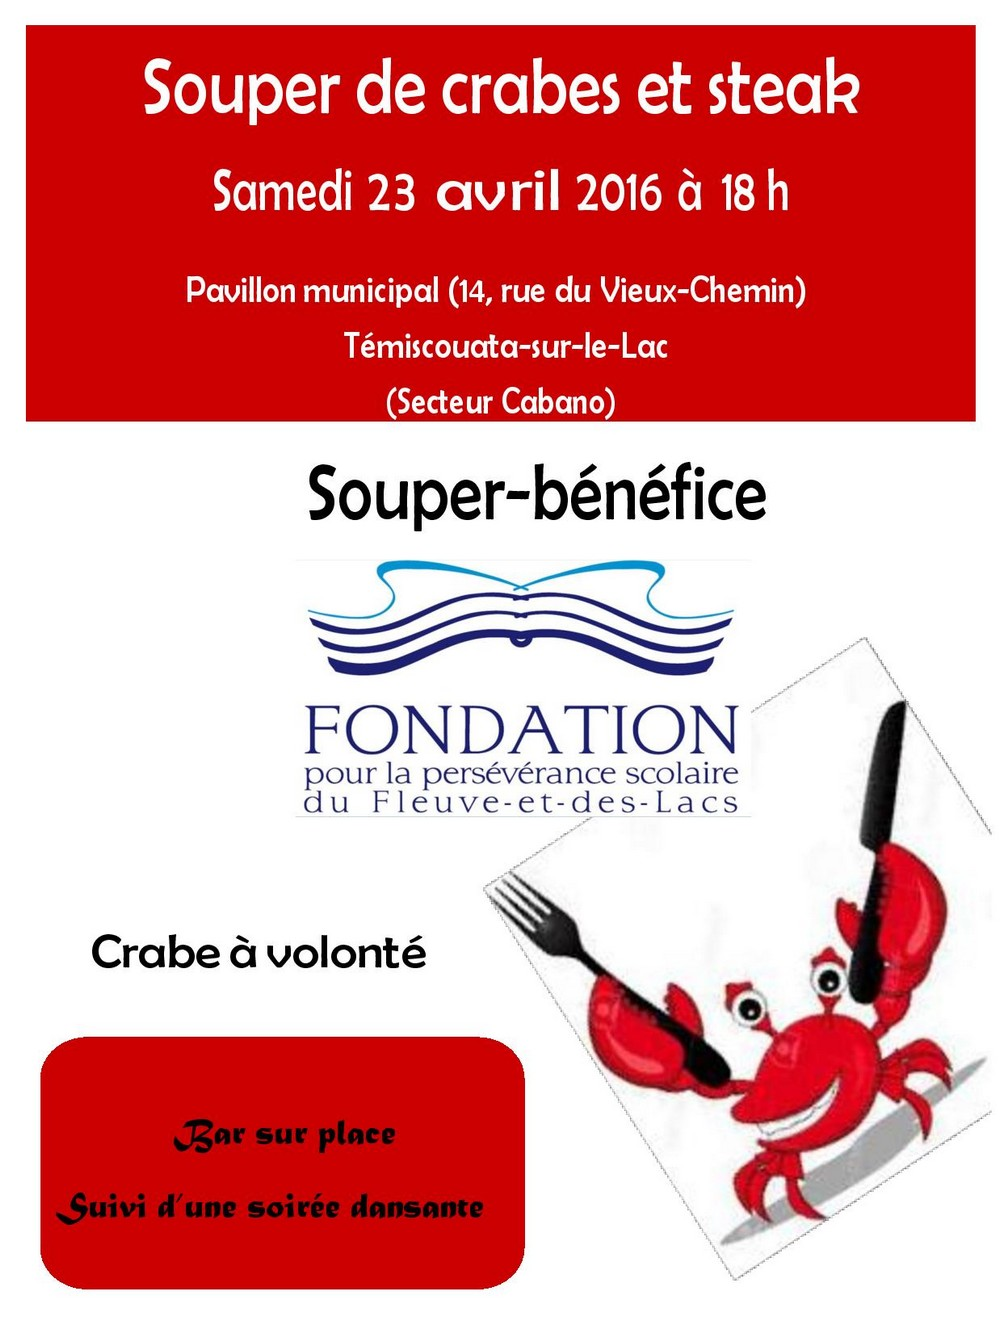 Souper Crabe et Steak 2016